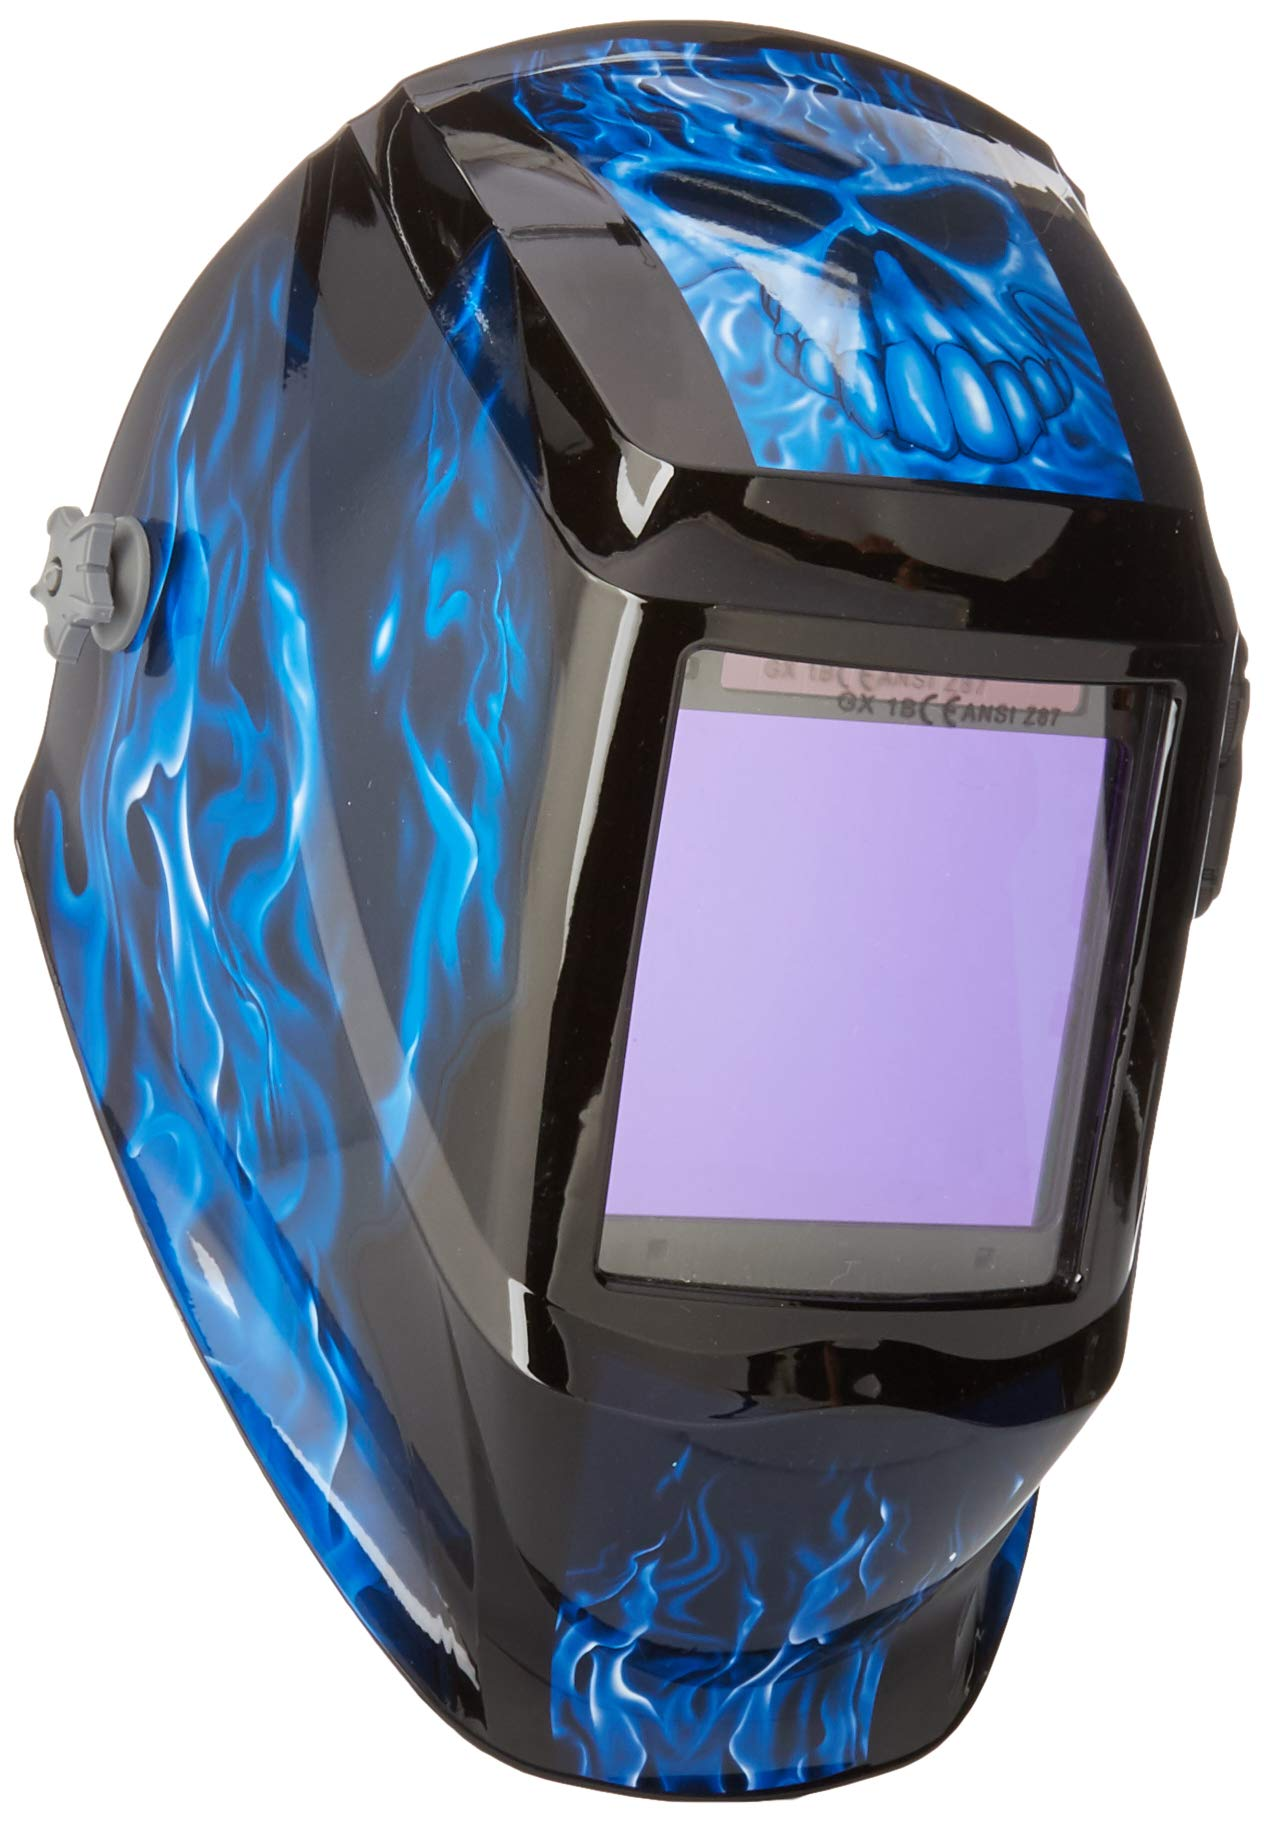 Instapark ADF Series GX990T Solar Powered Auto Darkening Welding Helmet with 4 Optical Sensors, 3.94'' X 3.86'' Viewing Area and Adjustable Shade Range #5 - #13 Bluish Devil